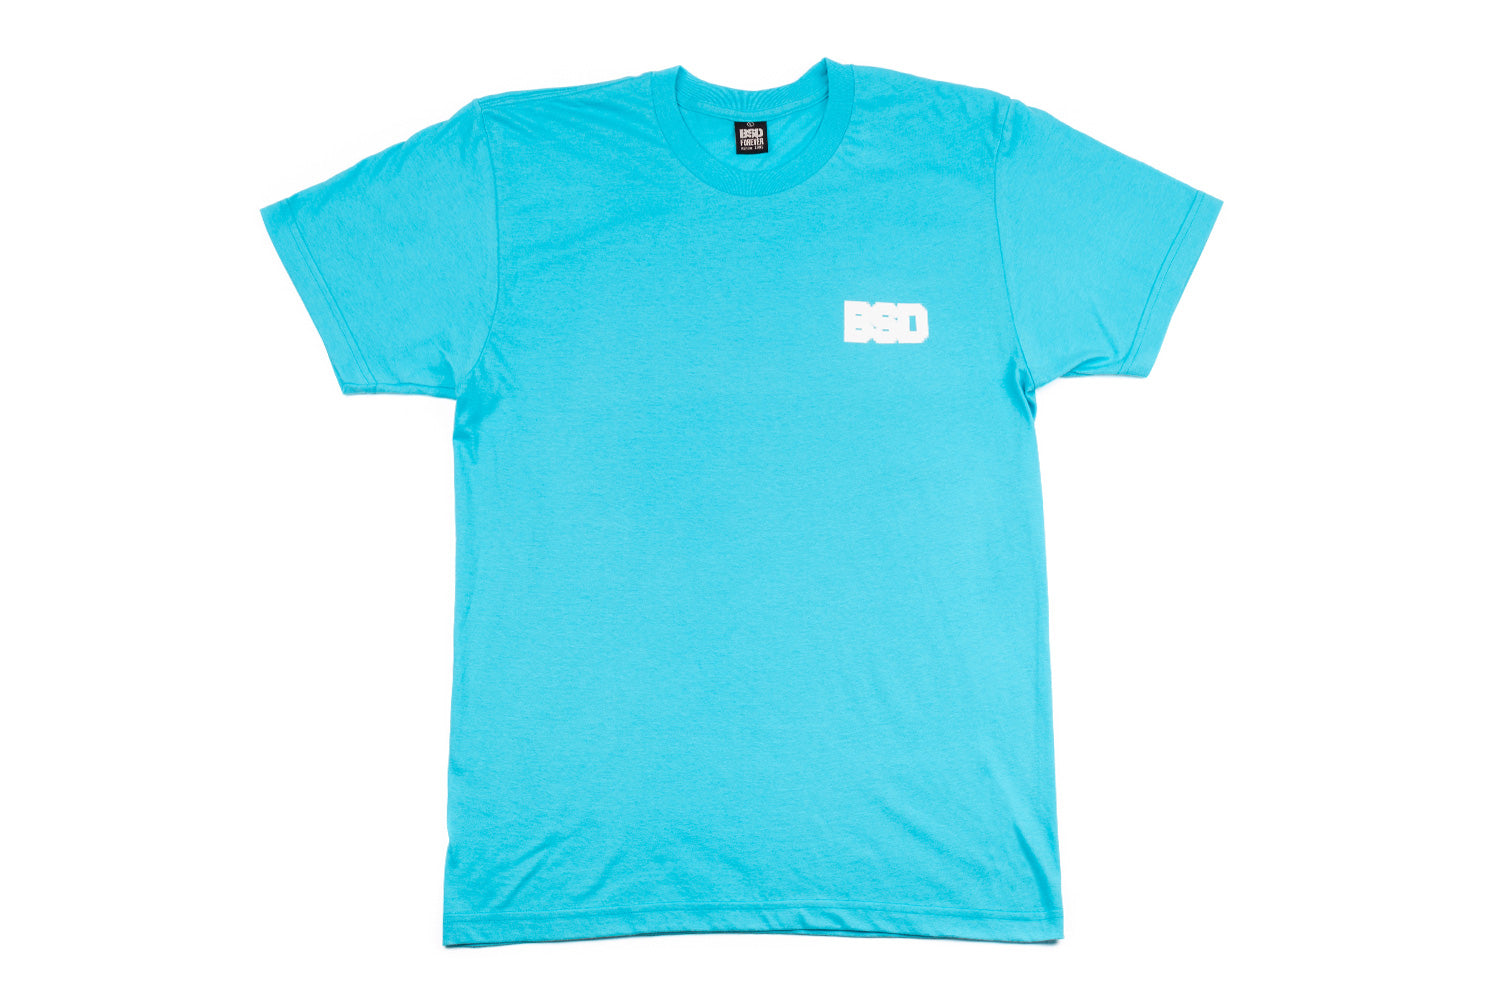 BSD Pixelate T-Shirt - Aqua - Large